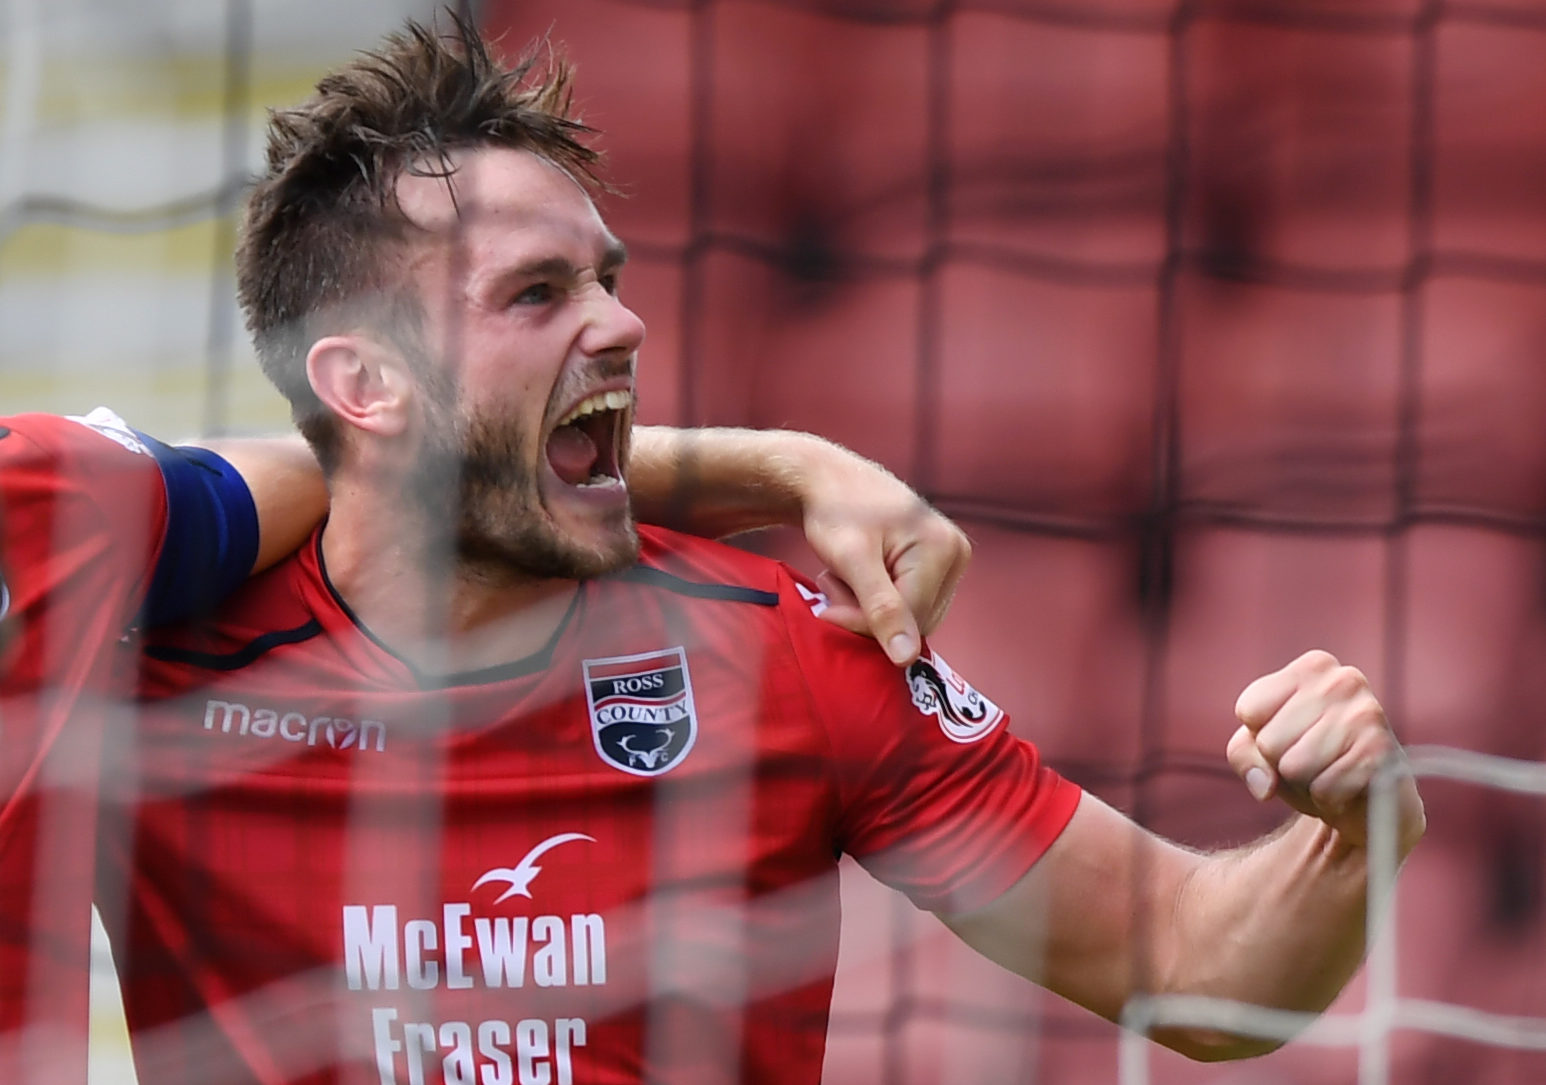 Keith Watson scored the winner in stoppage-time for Ross County.